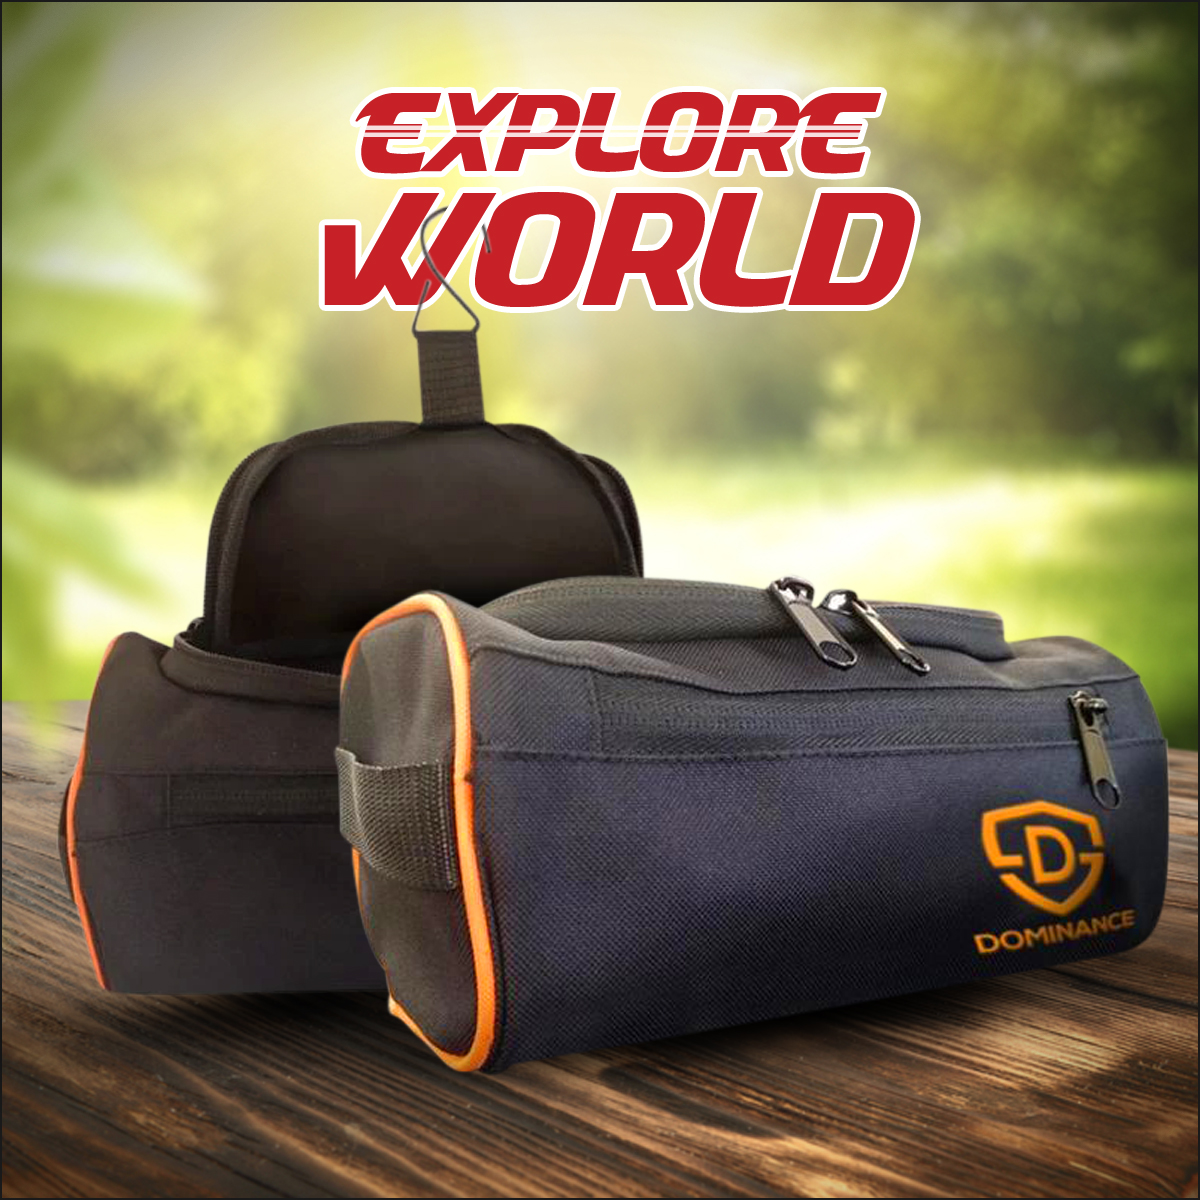 High Quality Toiletry Bag Men/Women travel Accessories with hanging option